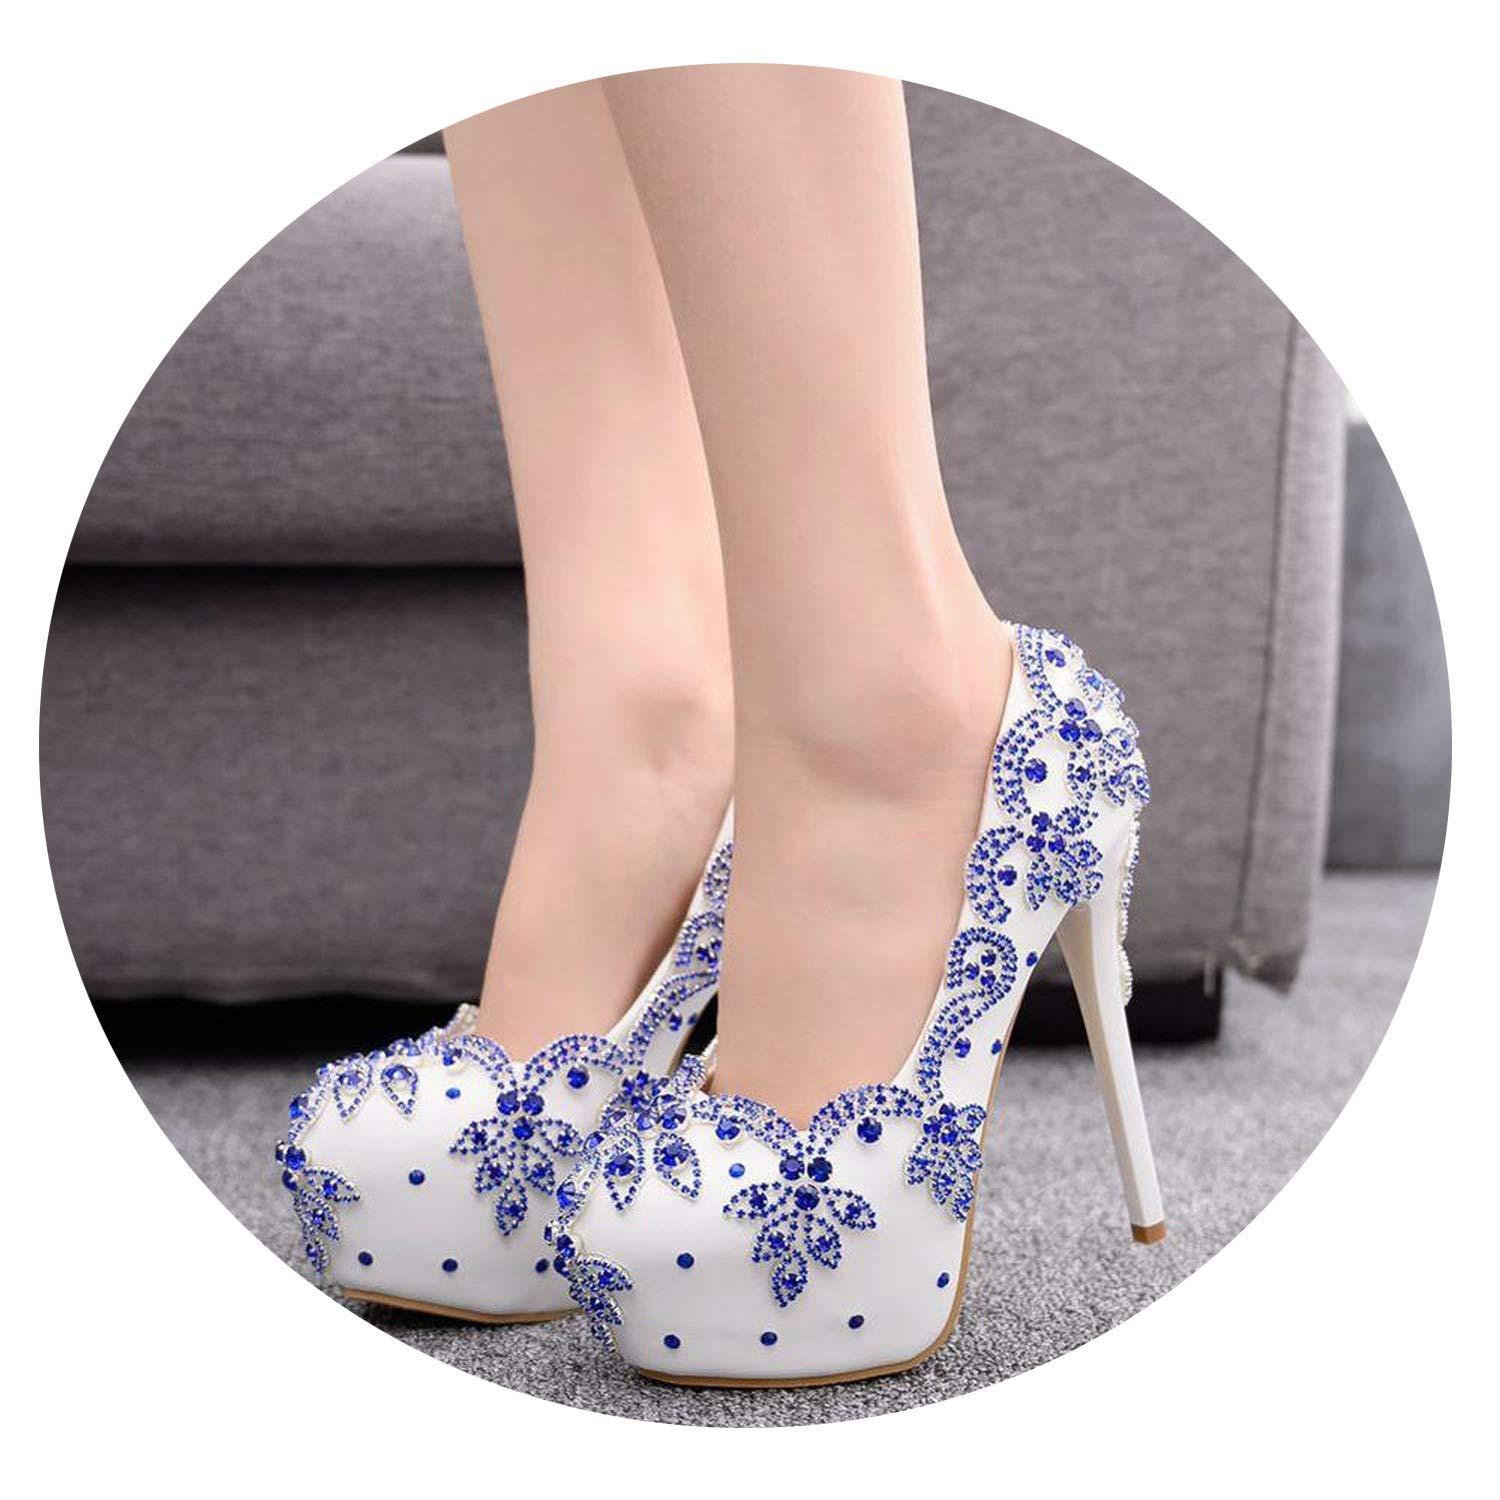 bluee colorful Dream- Sexy 14Cm Super High Heel Single Stiletto High Heels Temperament Elegant Rhinestone Wedding shoes